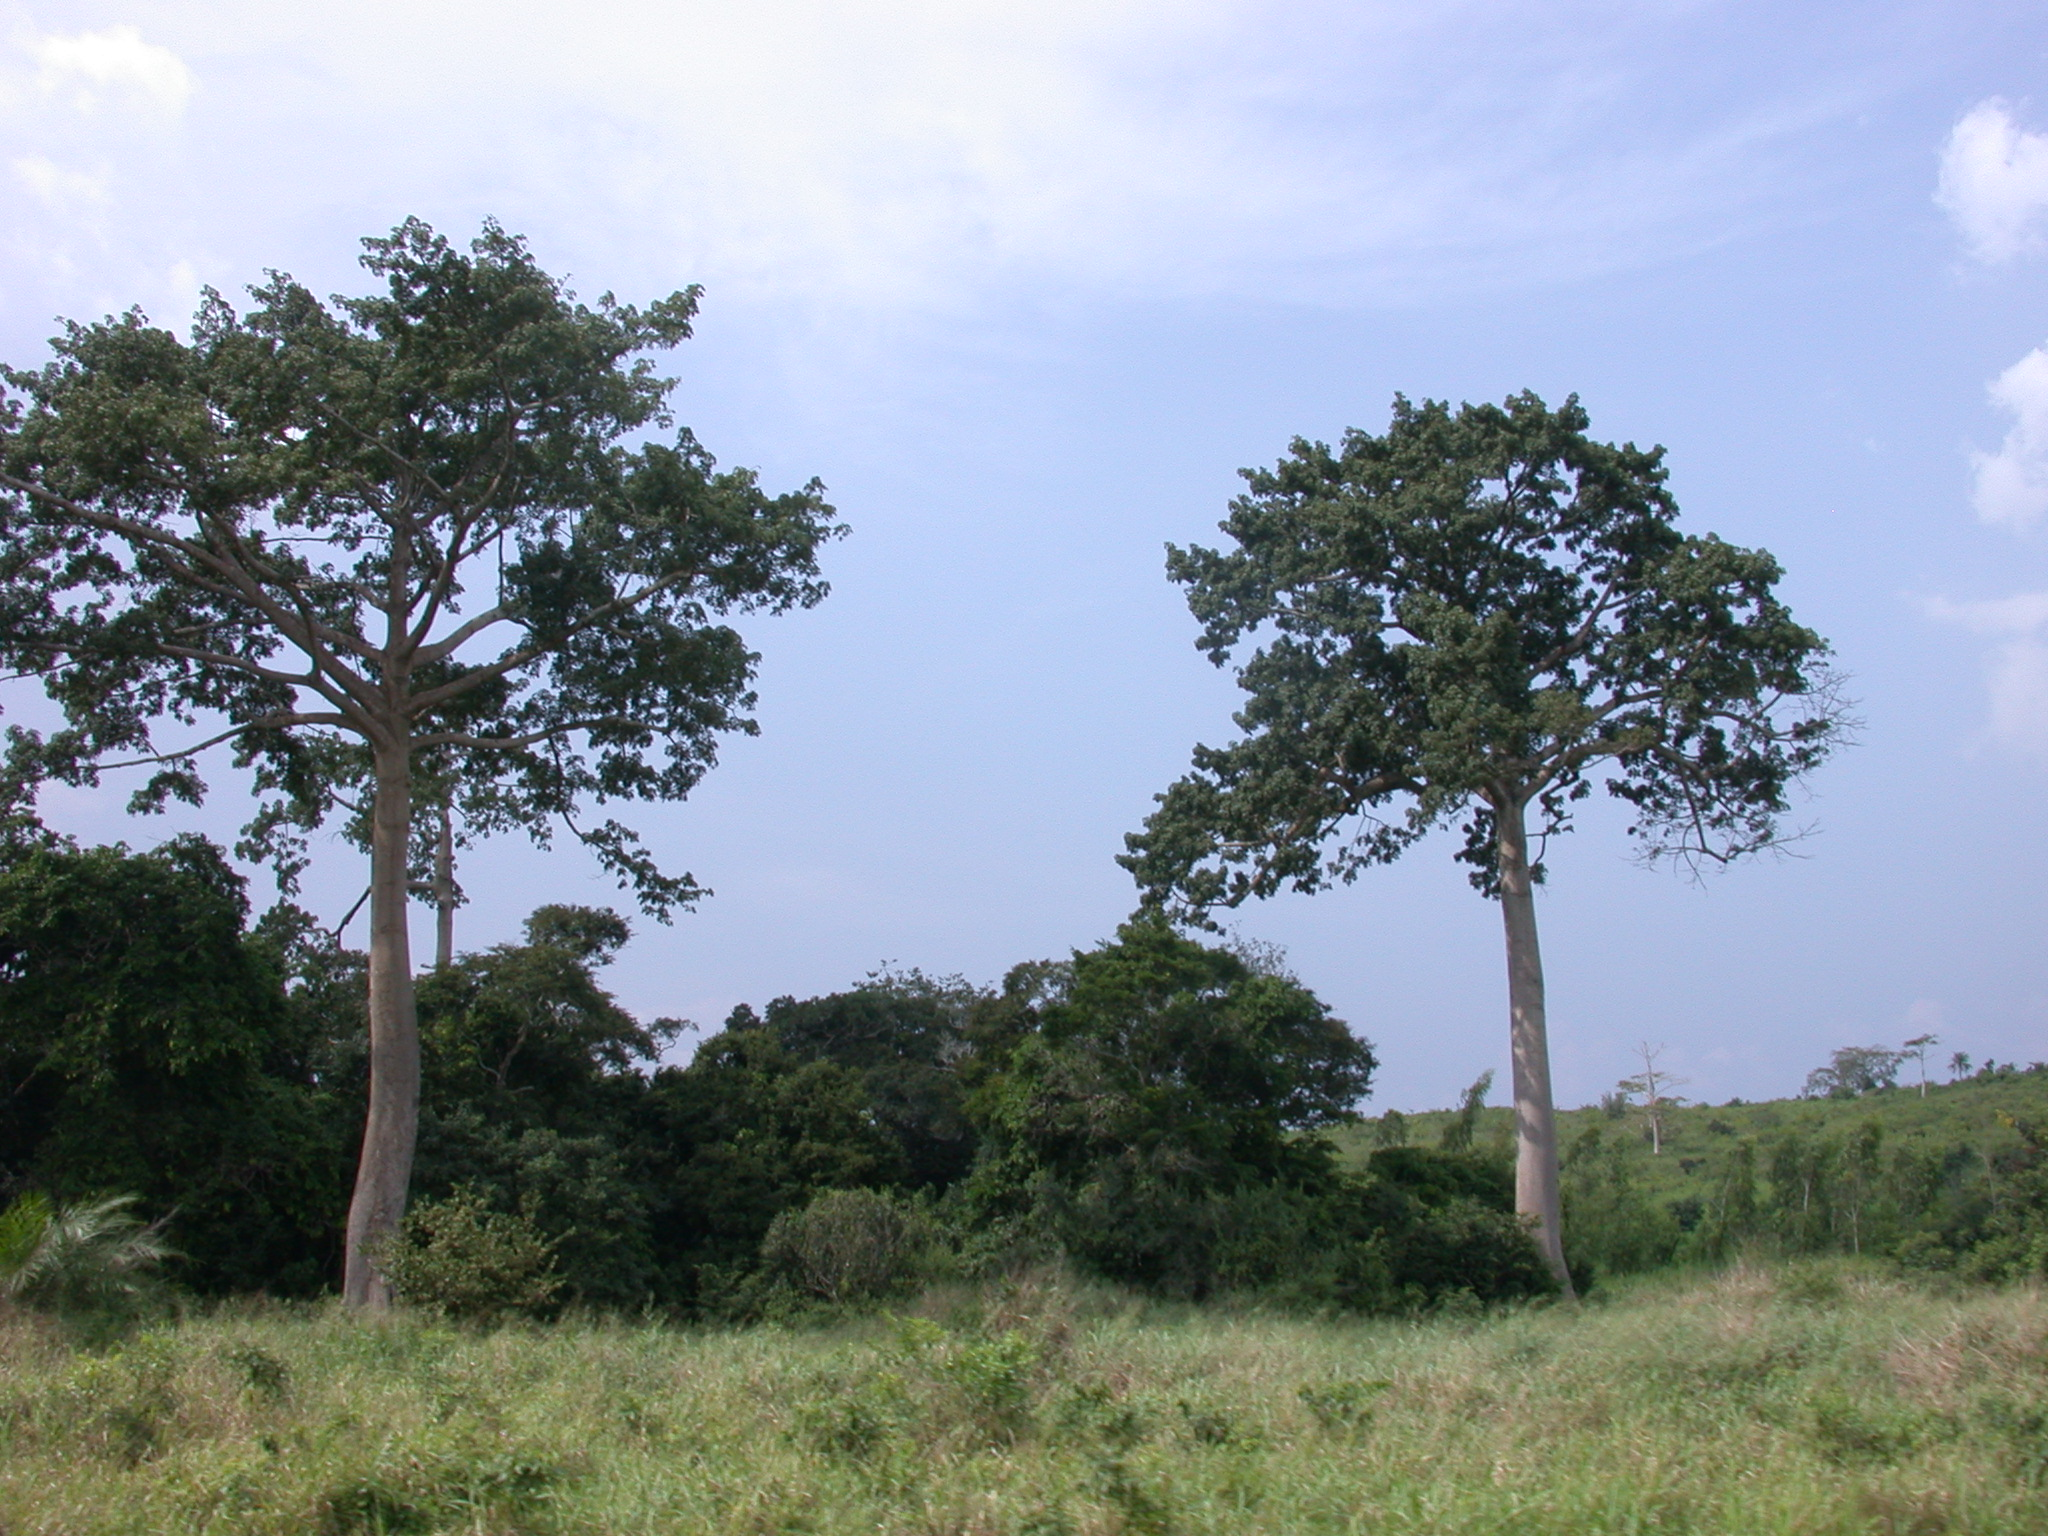 Landscape on Road From Accra to Cape Coast, Ghana